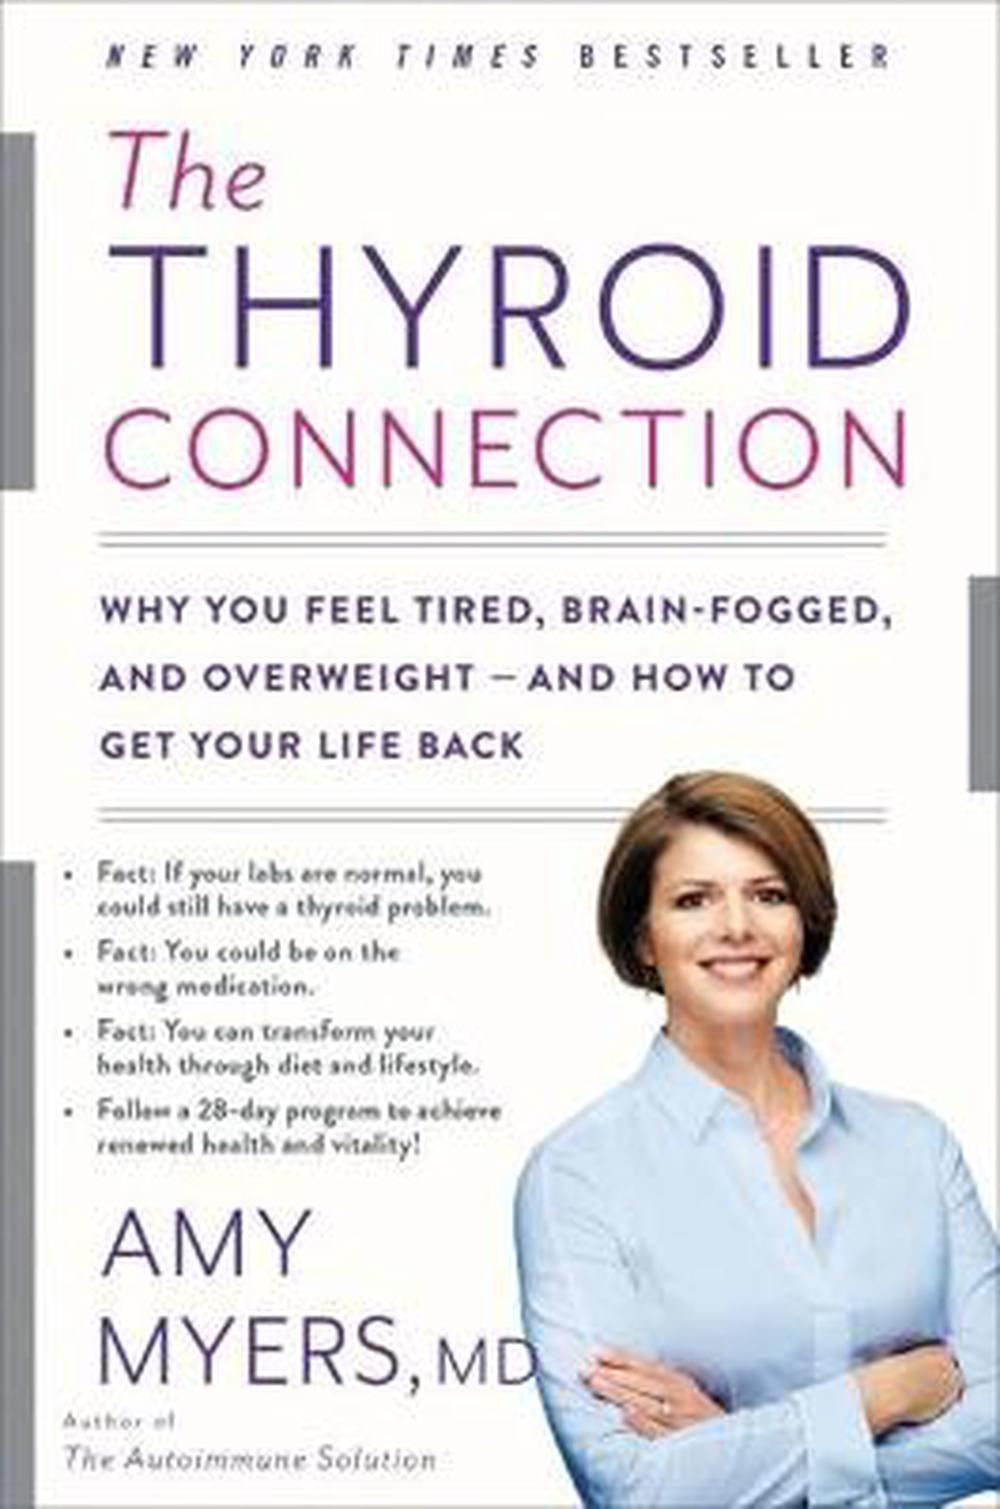 The Thyroid Connection: Why You Feel Tired, Brain-Fogged, and Overweight - and How to Get Your Life Back